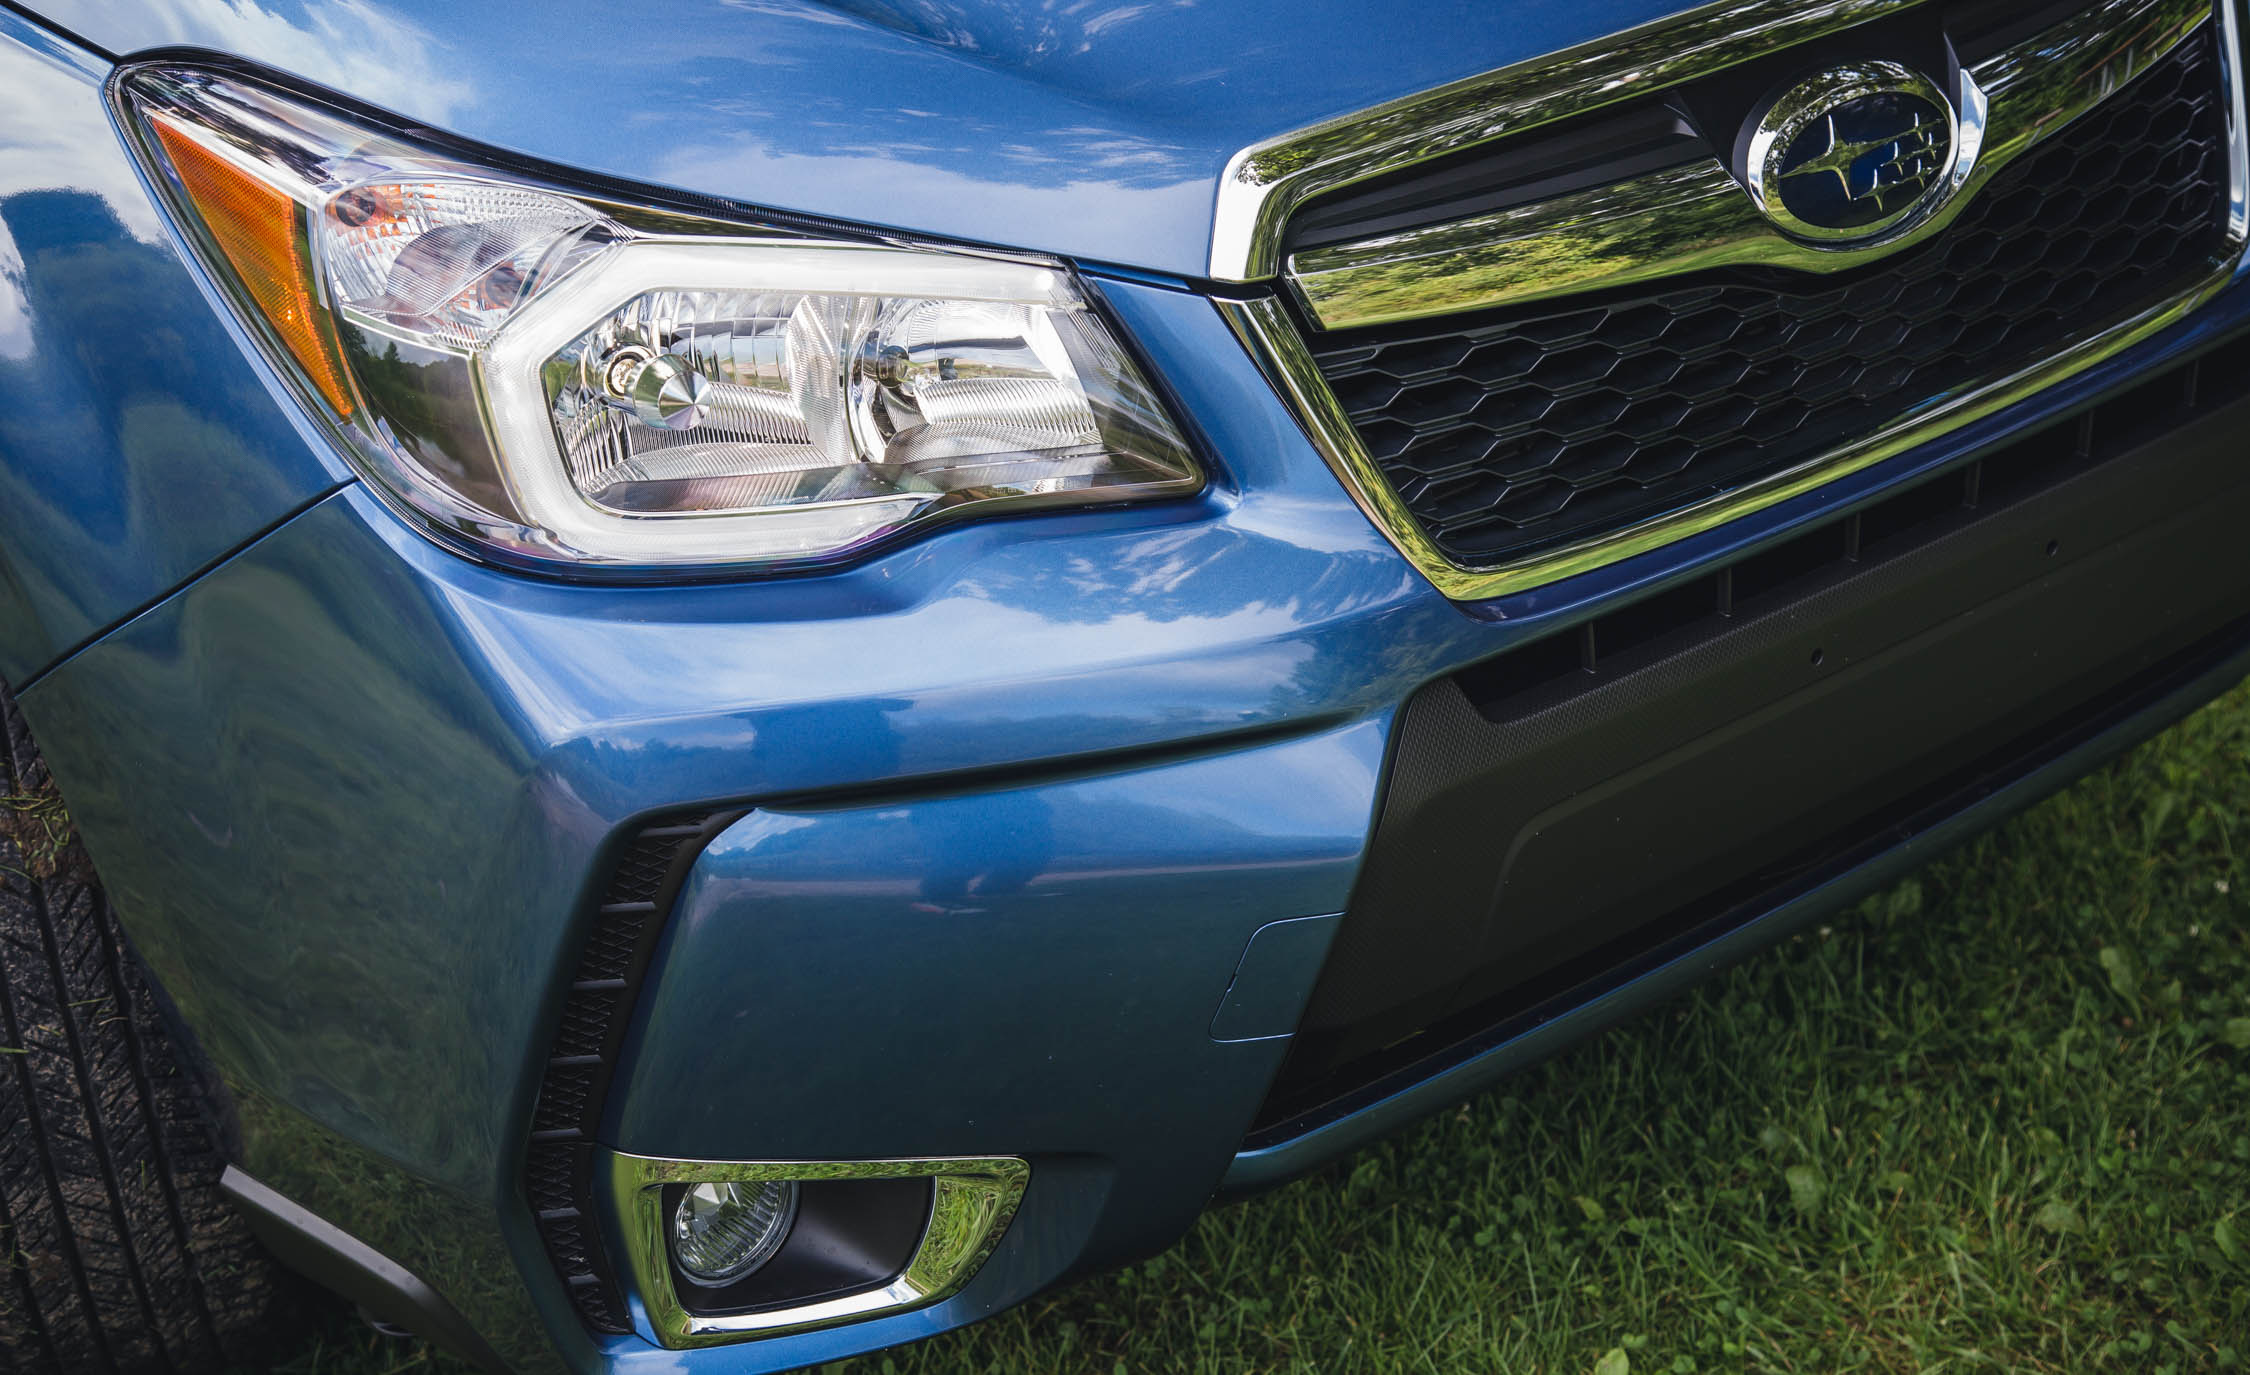 2016 Subaru Forester 2 0xt Touring Exterior Headlight Left (View 28 of 29)